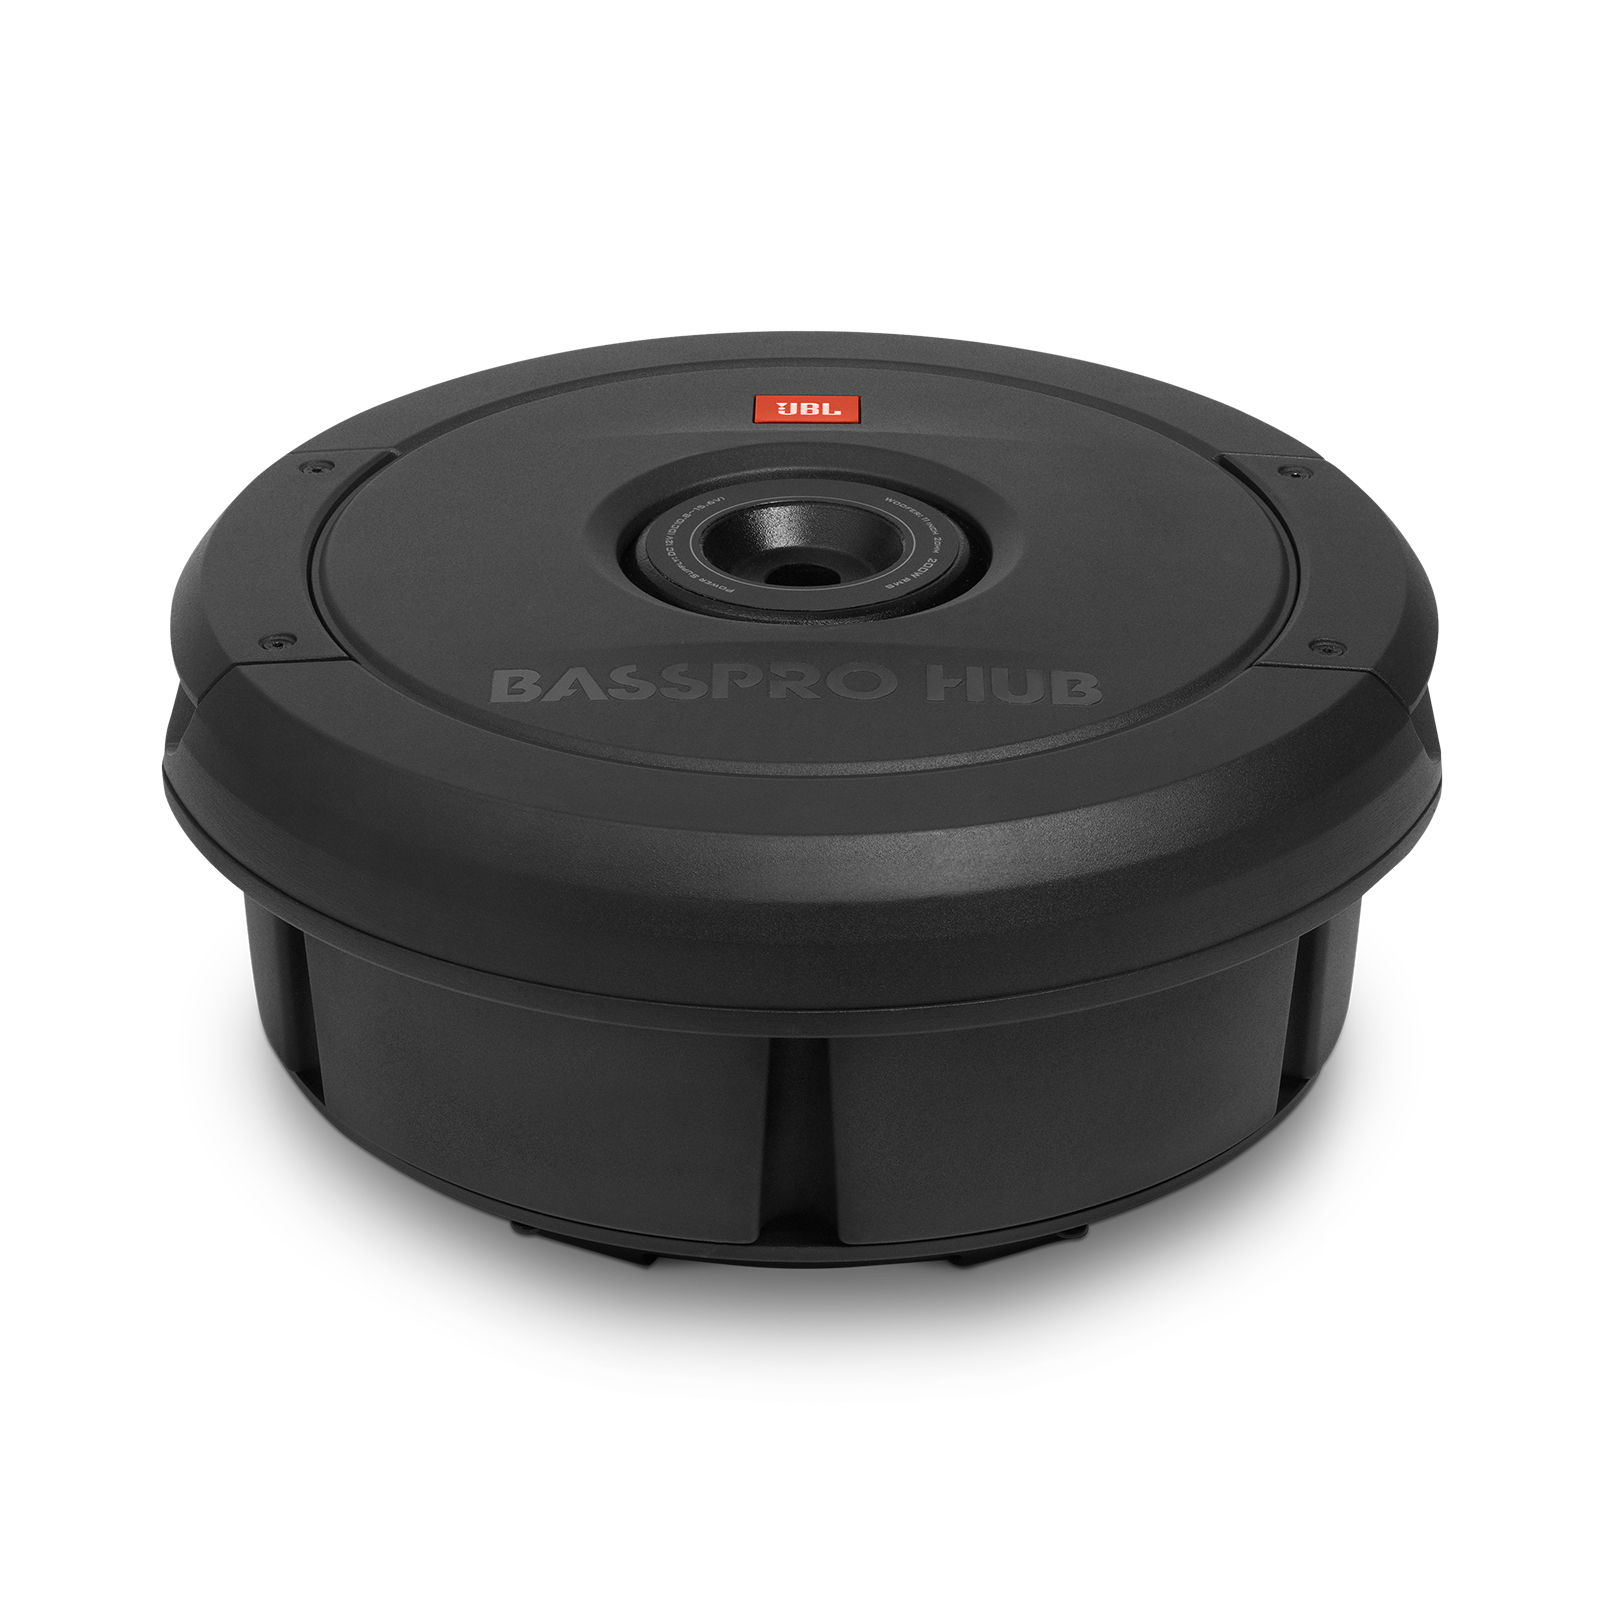 "JBL BassPro Hub - Black - 11"" (279mm) Spare tire subwoofer with built-in 200W RMS amplifier with remote control. - Detailshot 1"